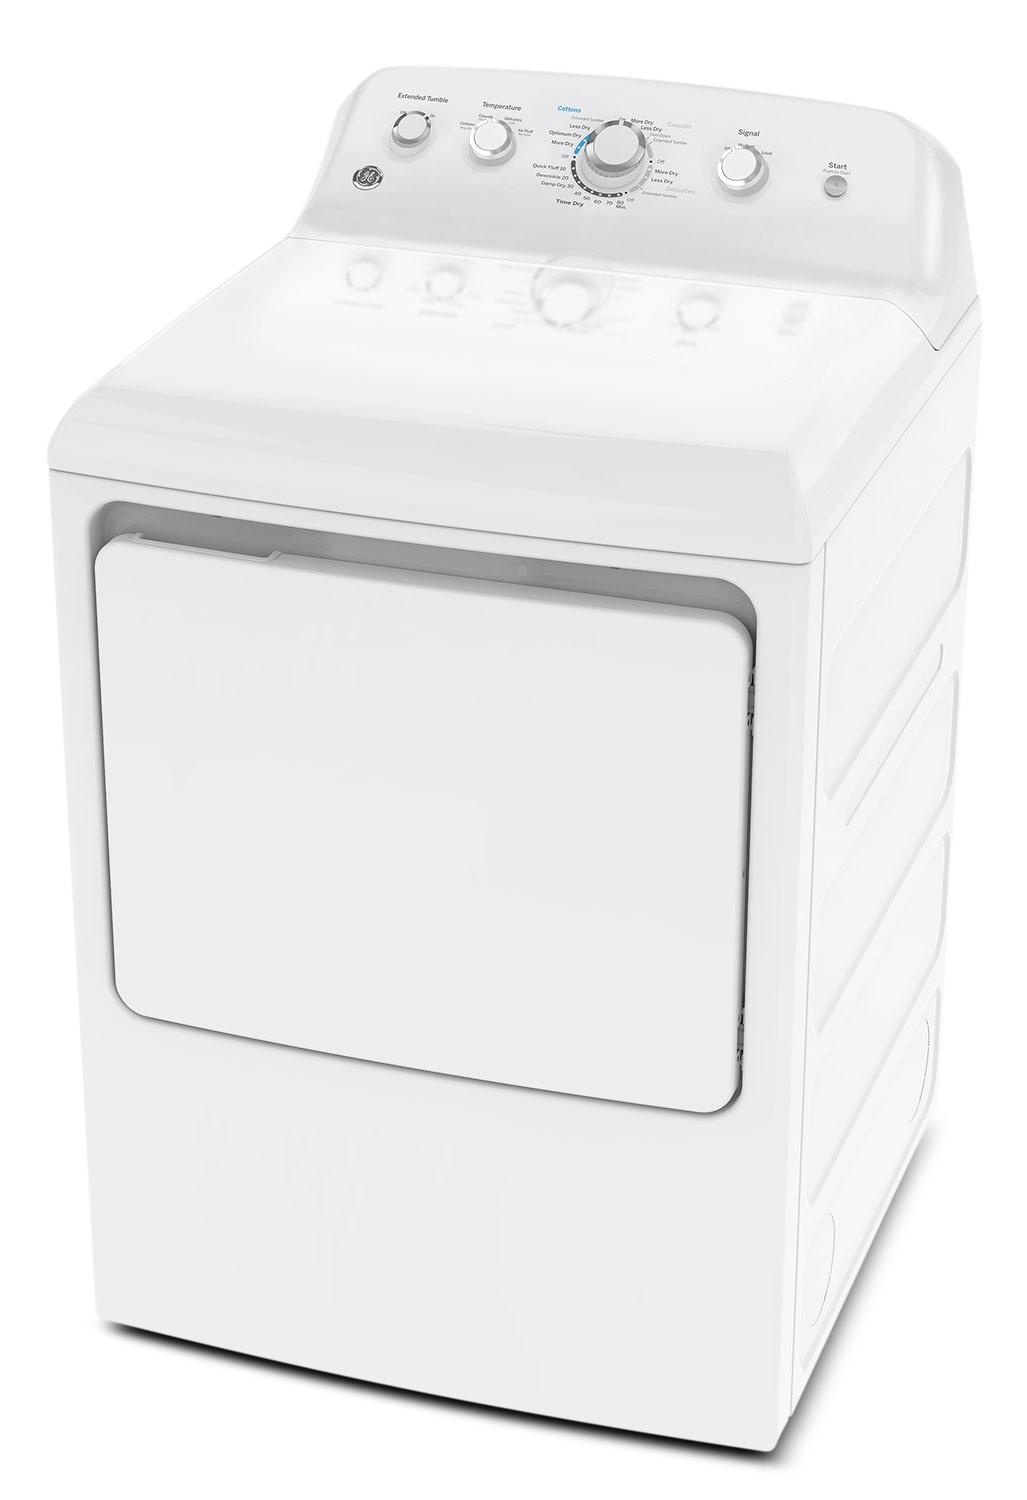 Washers and Dryers - GE 7.2 Cu. Ft. Gas Dryer – GTD42GAMJWW